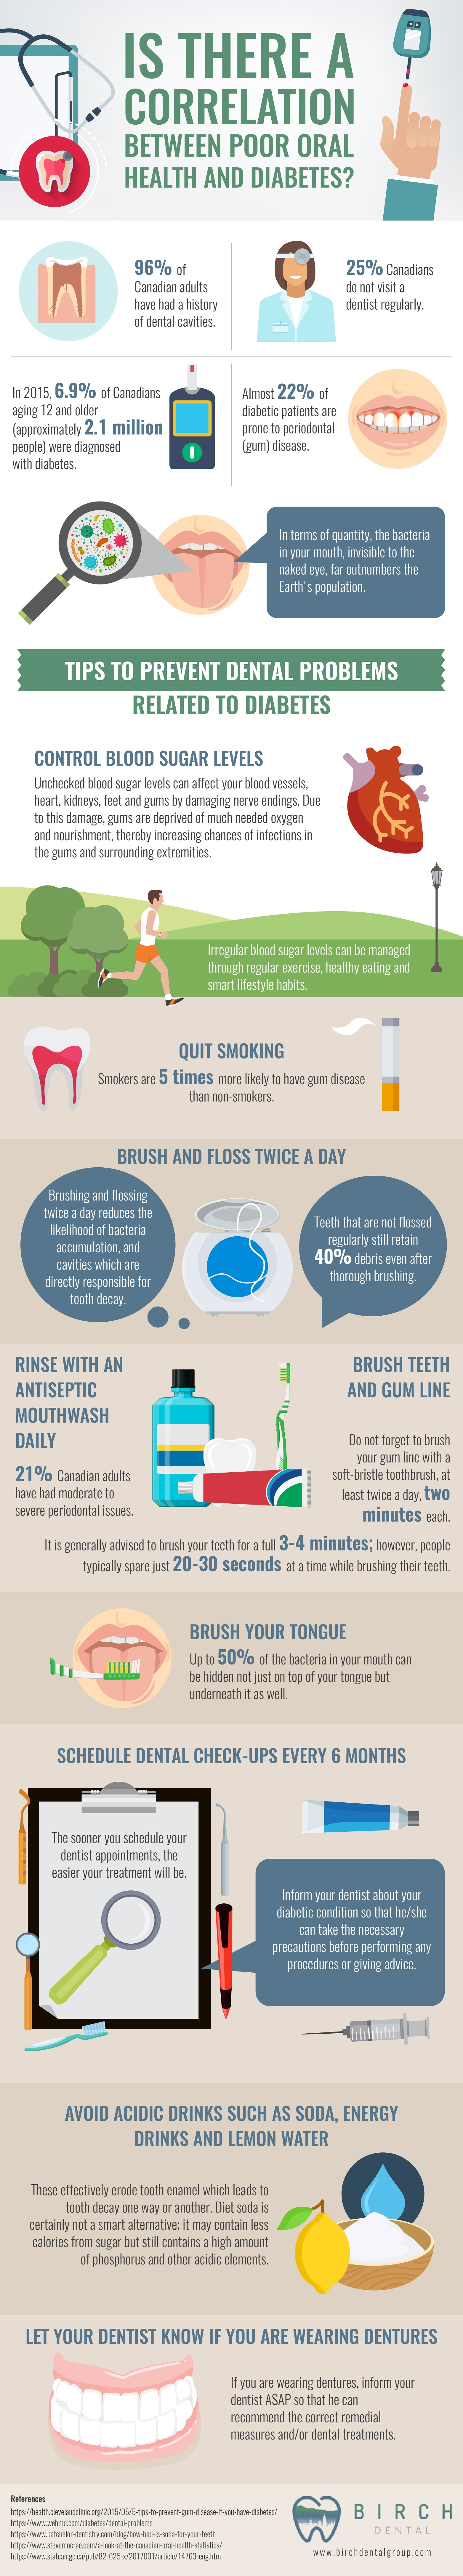 diabetes and oral health infographic